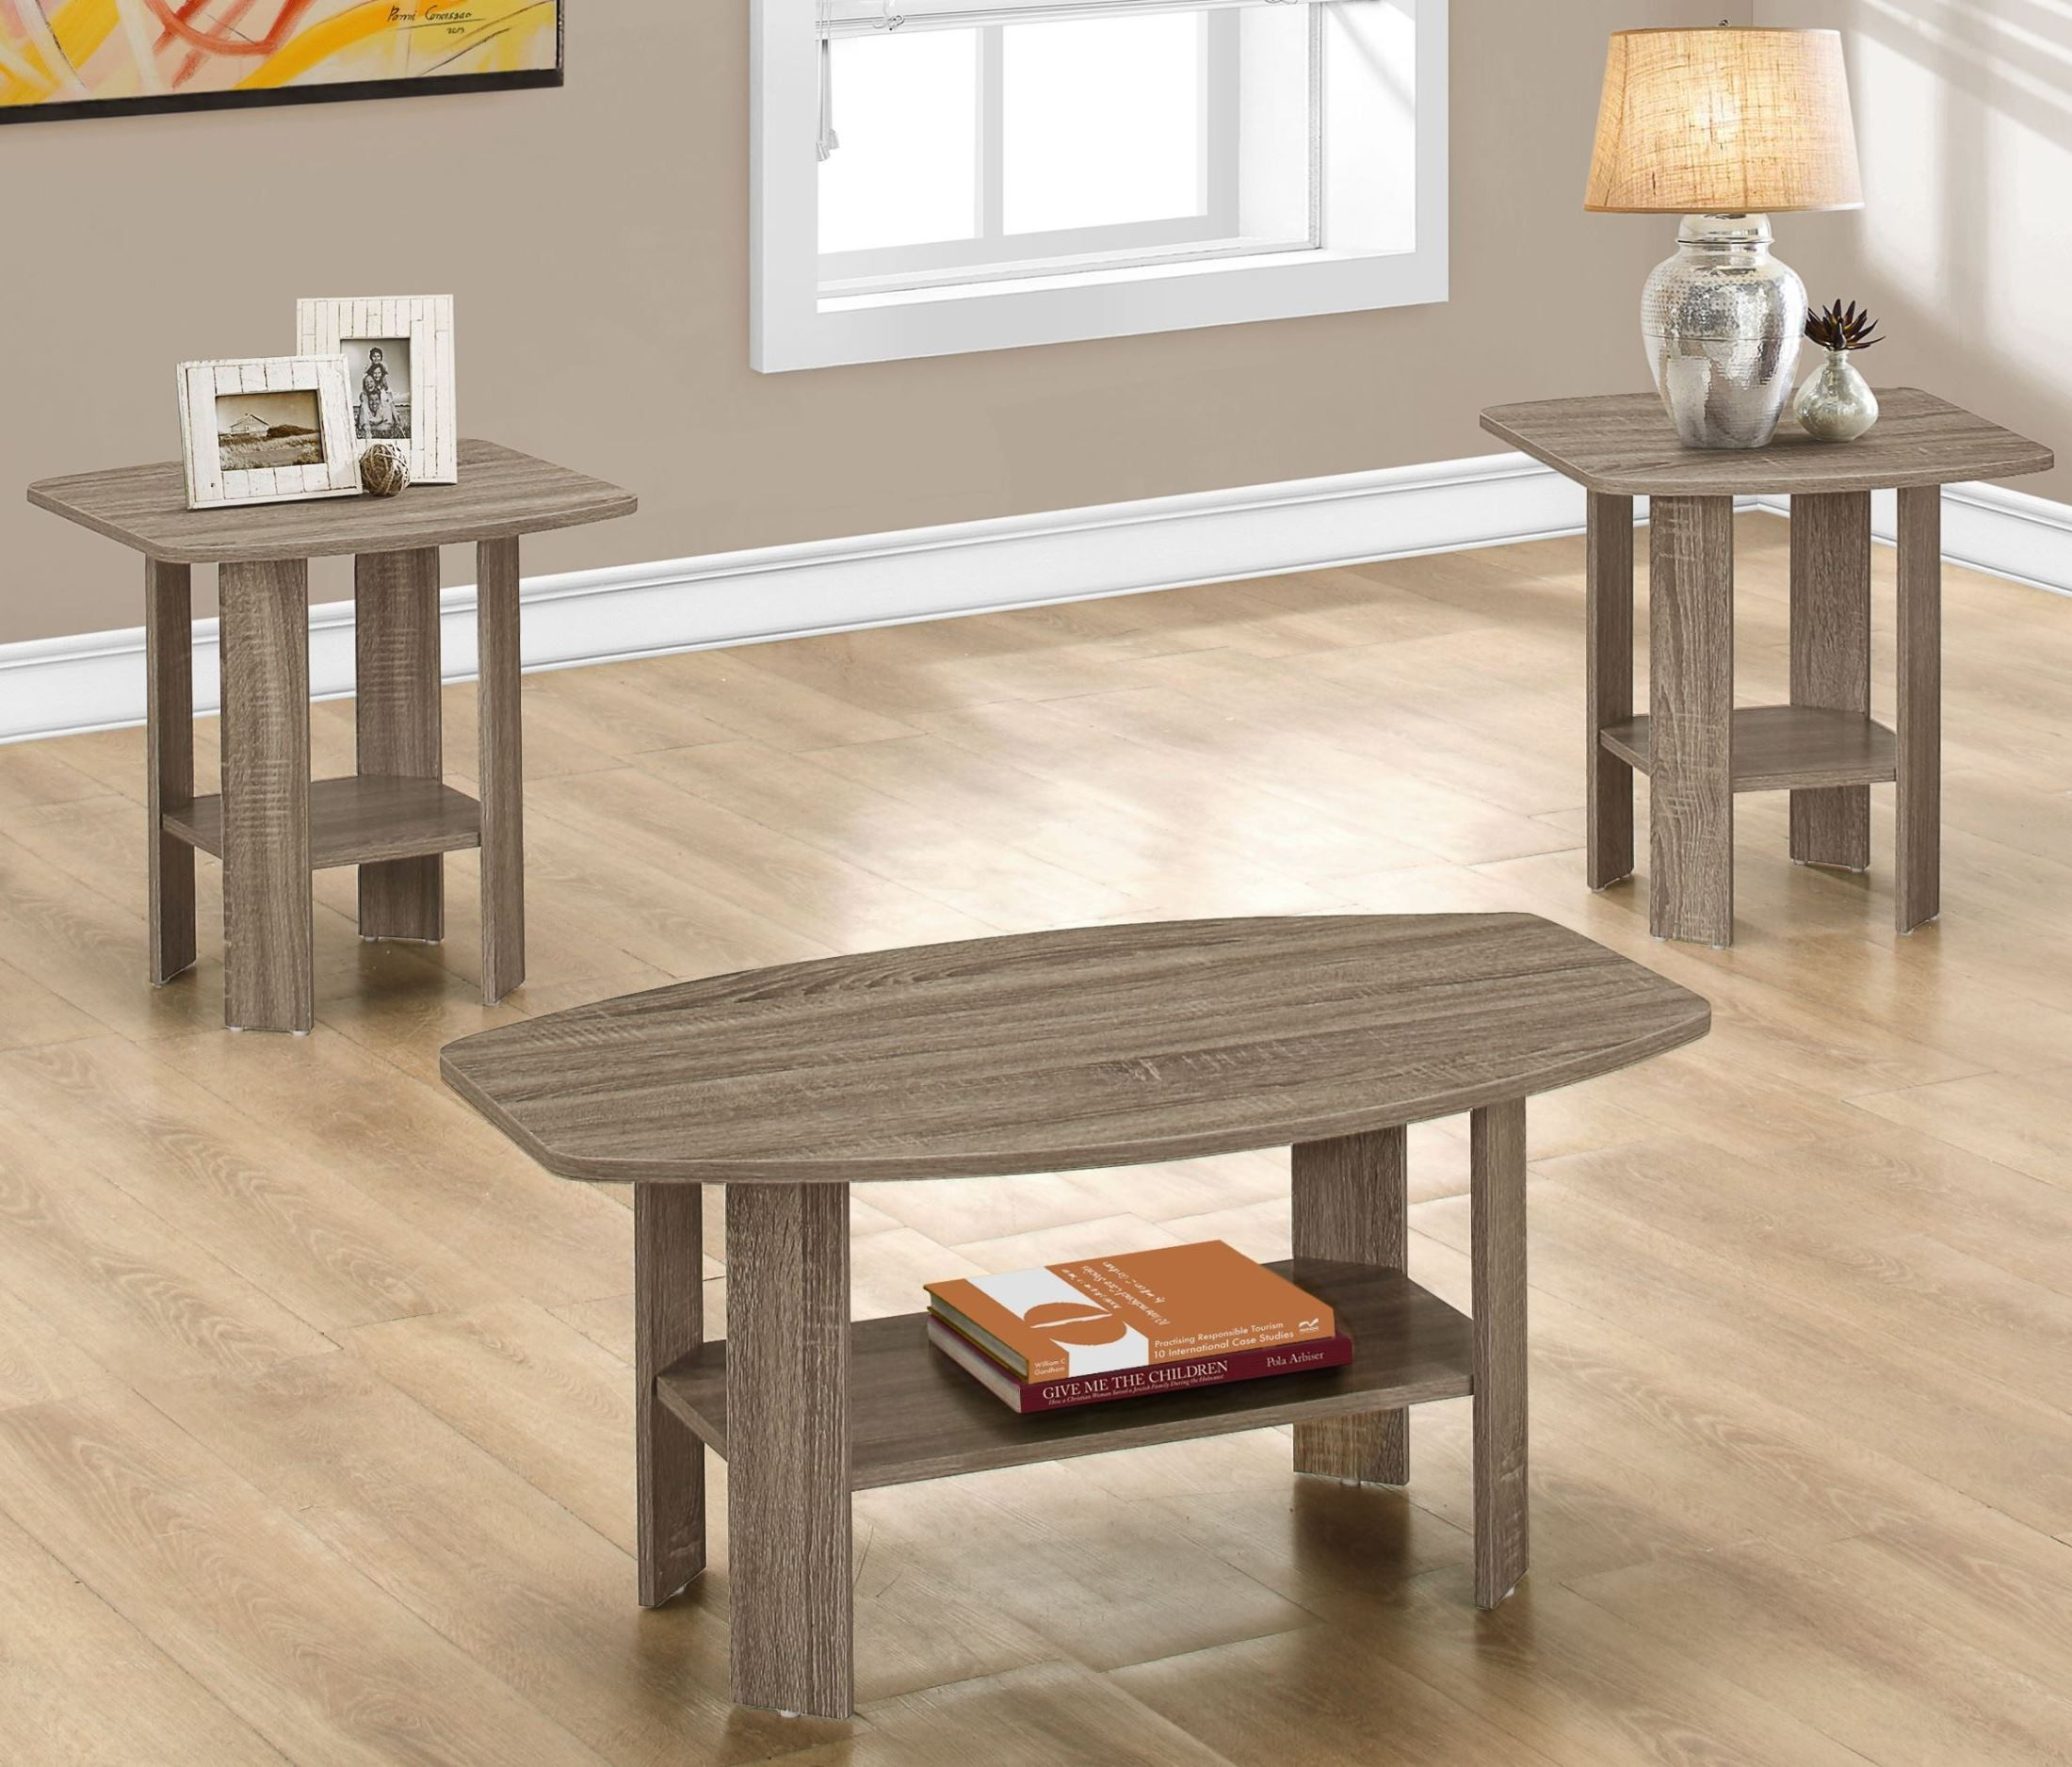 Taupe Wicker Coffee Table: Dark Taupe 3 Piece Occasional Table Set From Monarch